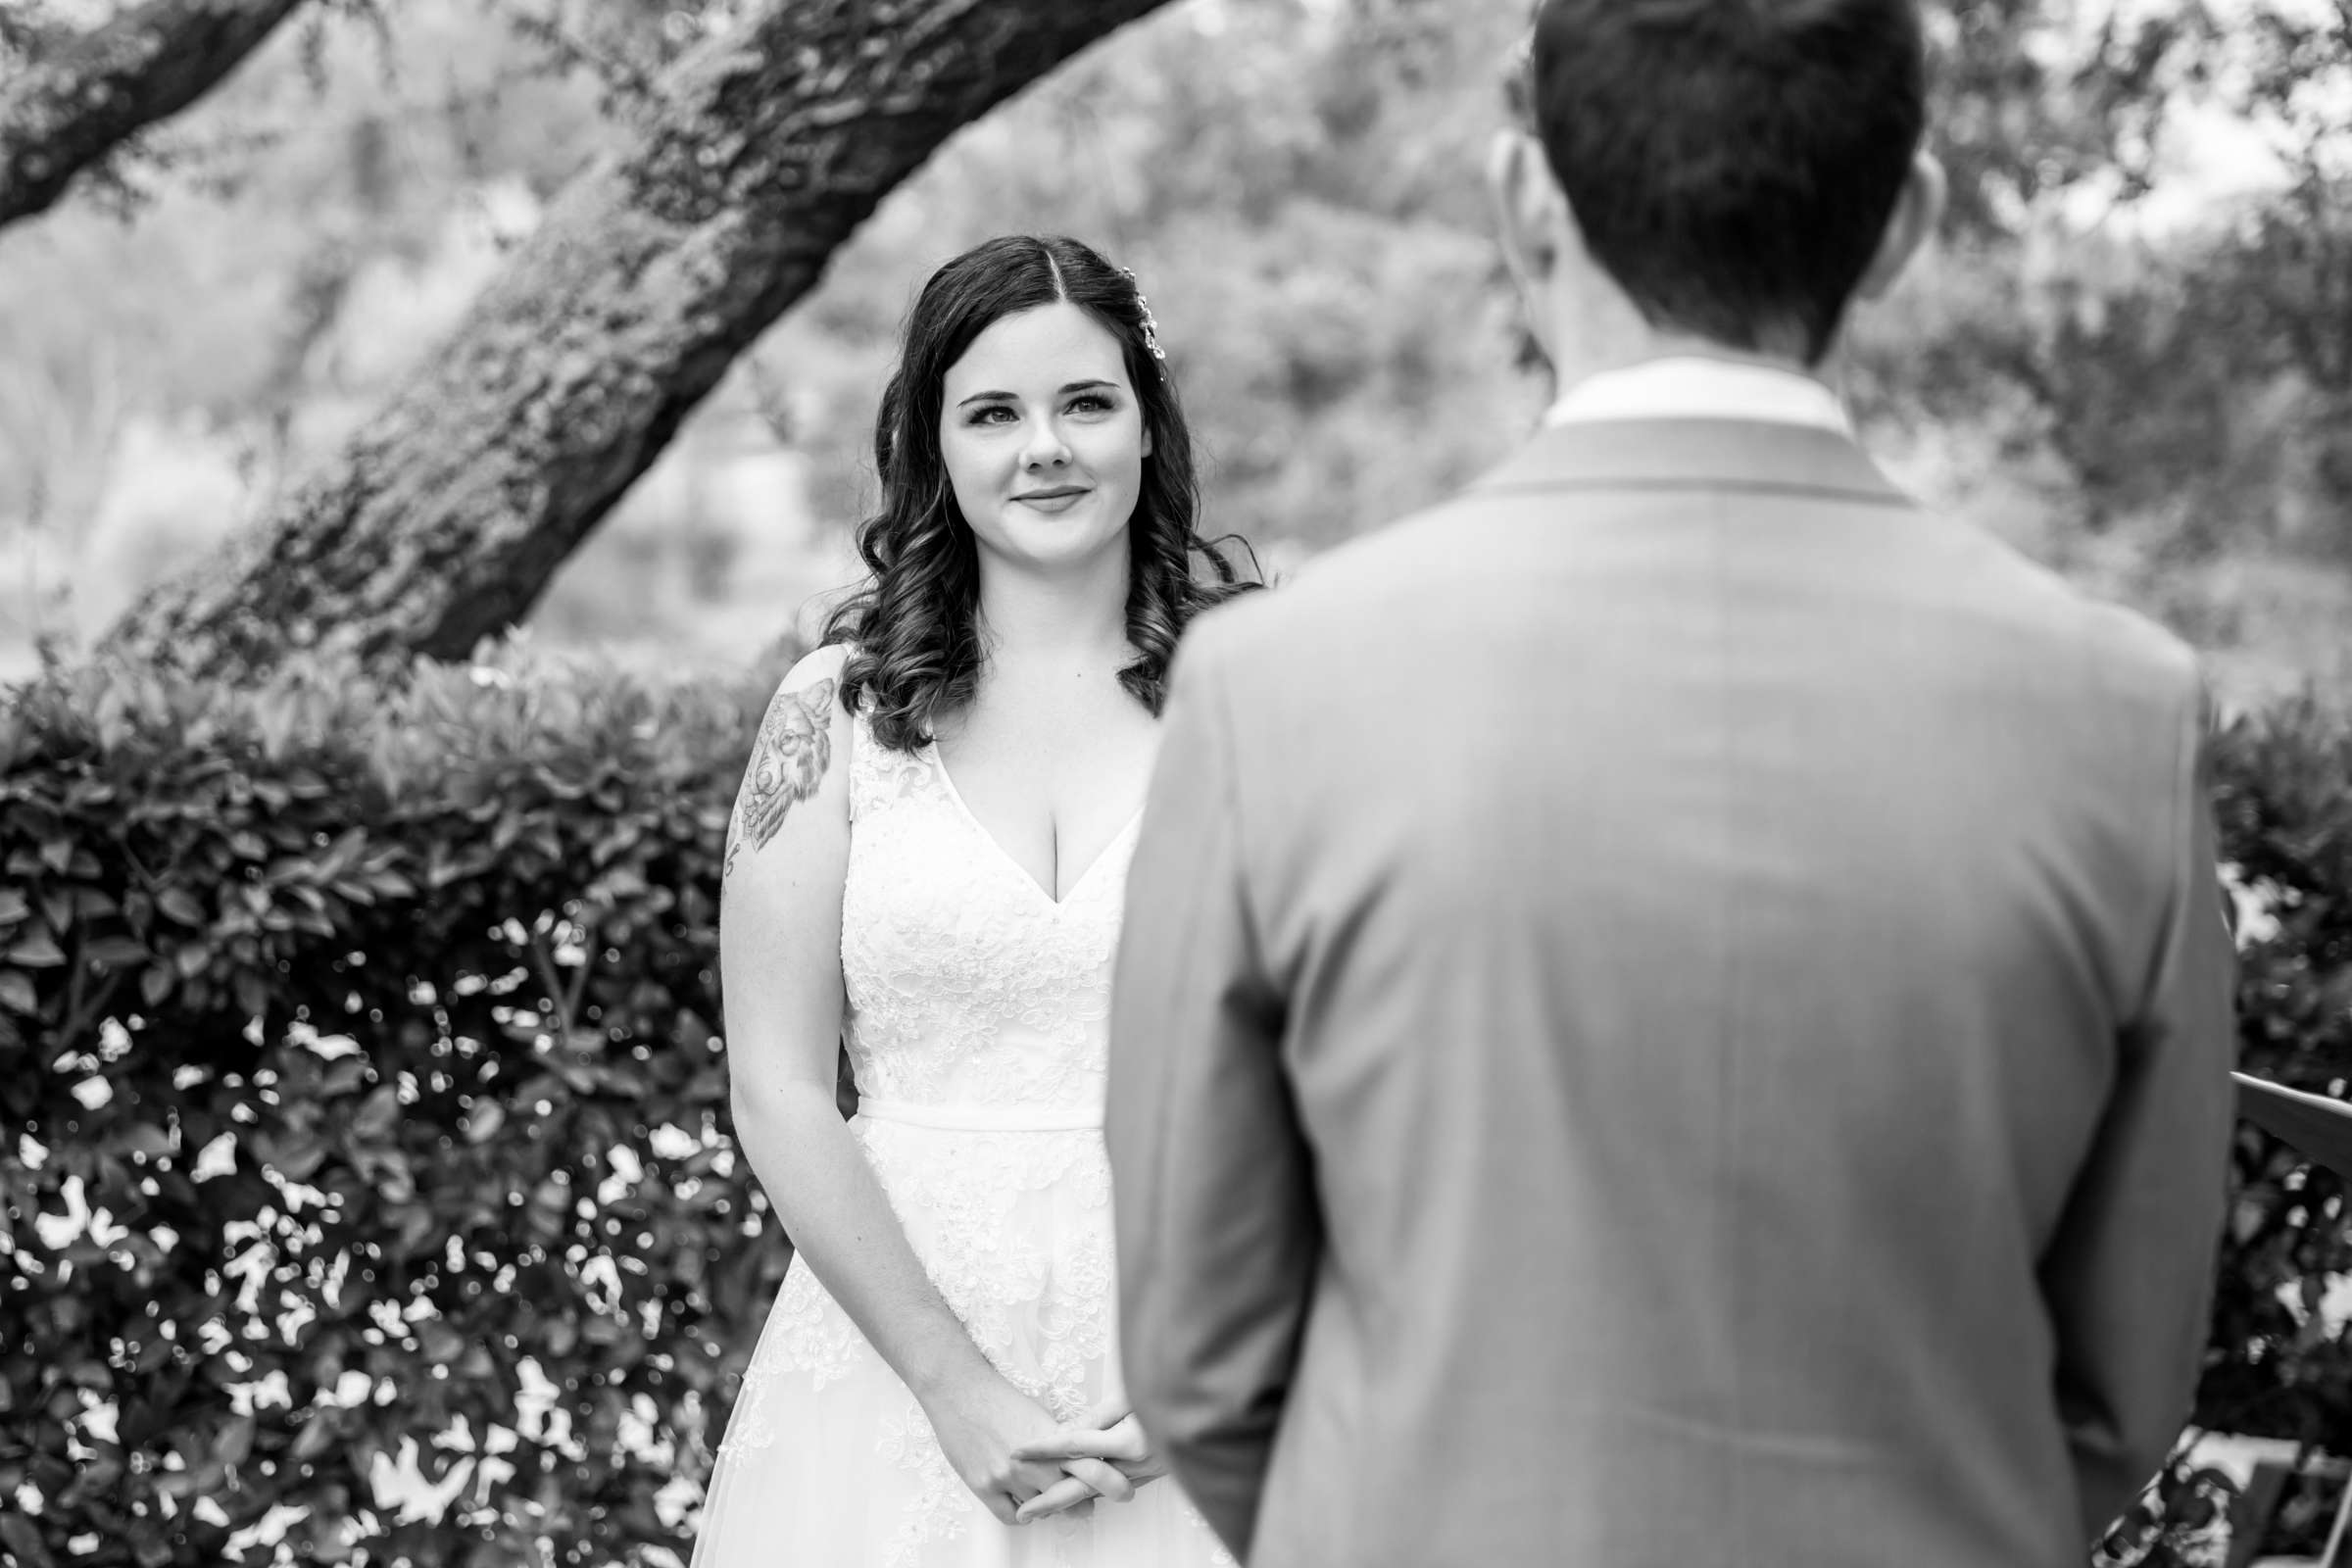 Mt Woodson Castle Wedding, Valerie and Ian Wedding Photo #65 by True Photography